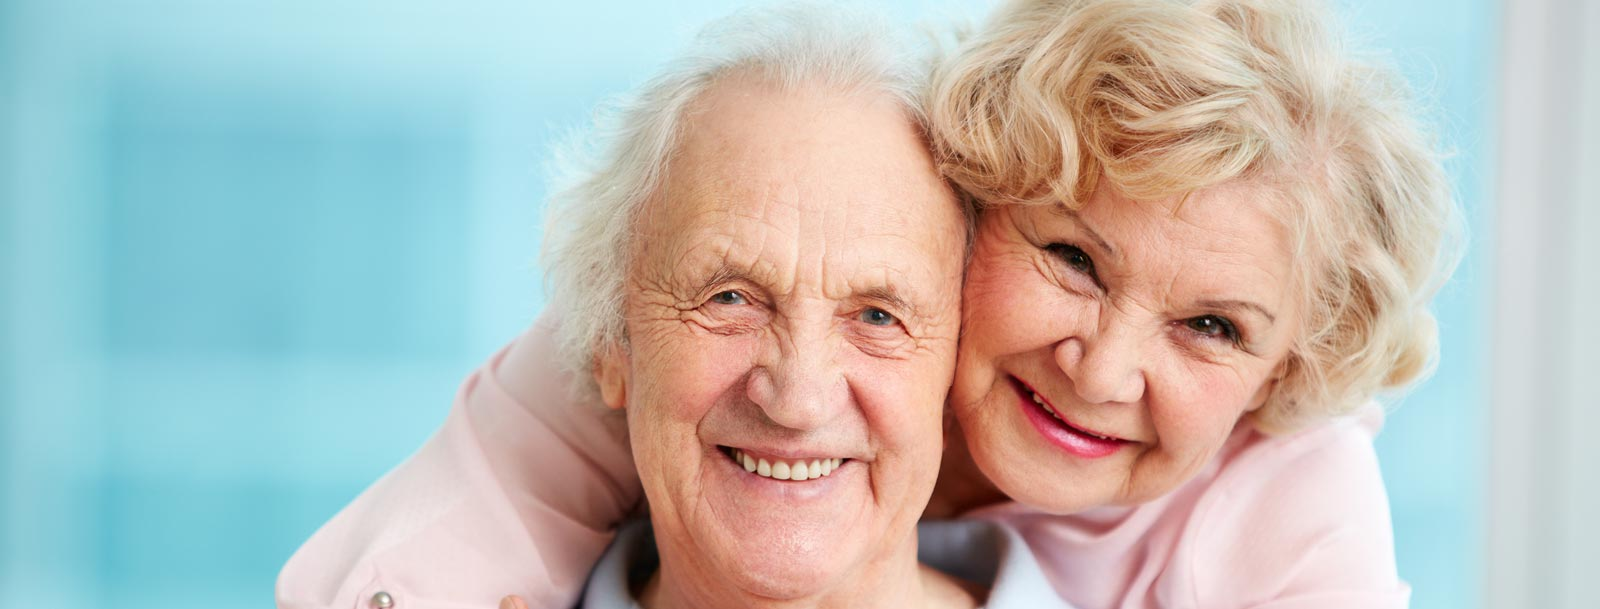 Support our mission at the senior living facility in Arkansas City